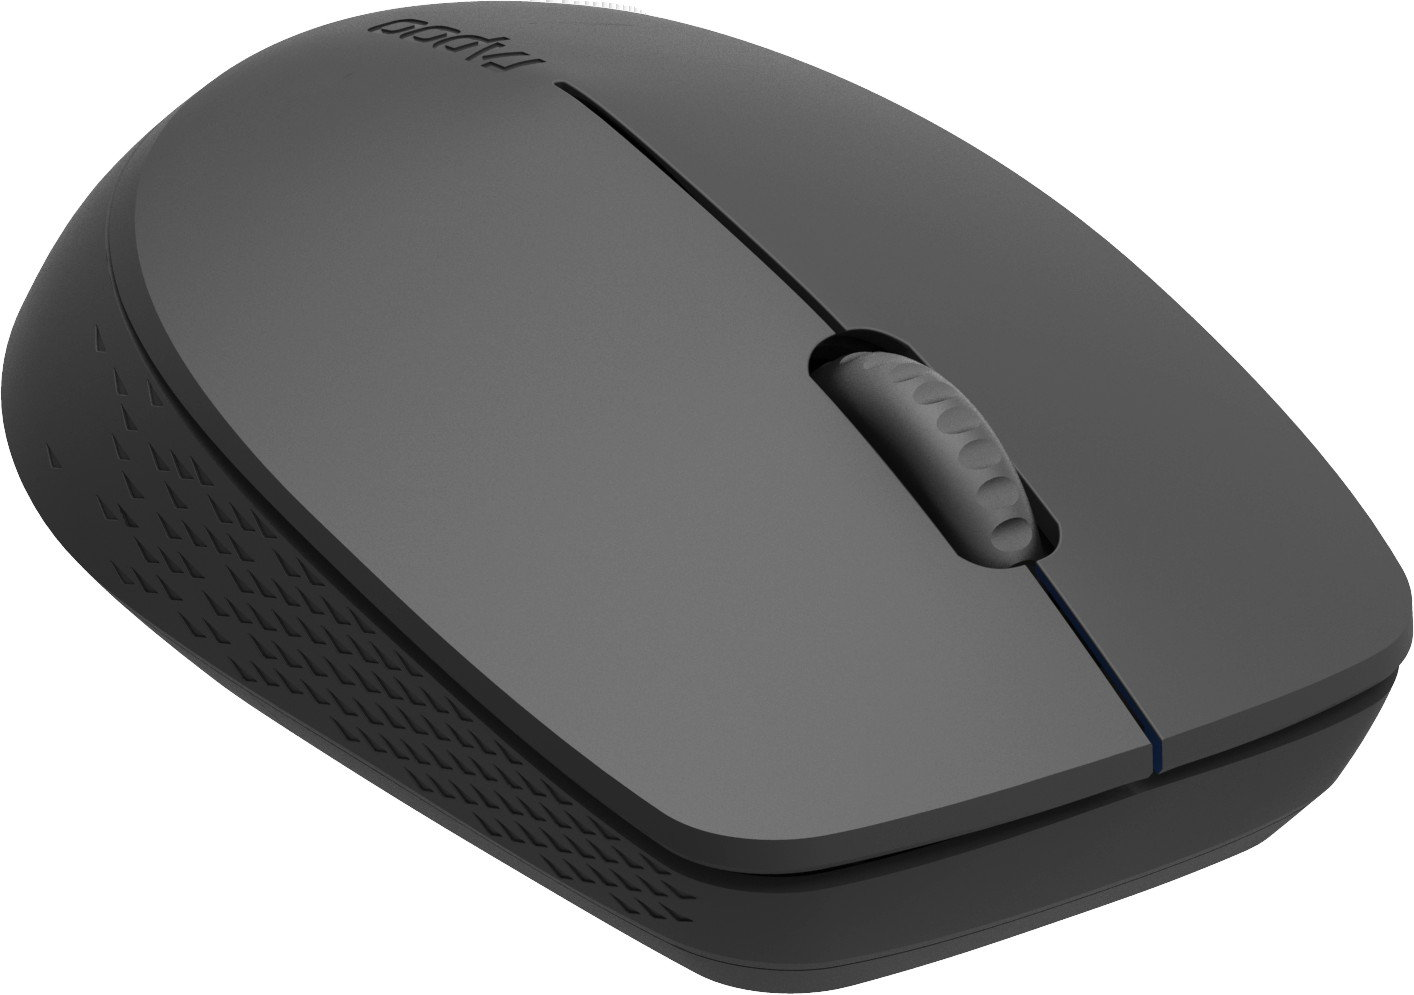 Rapoo M100 Silent Comfortable Silent Multi-Mode Mouse Dark Grey